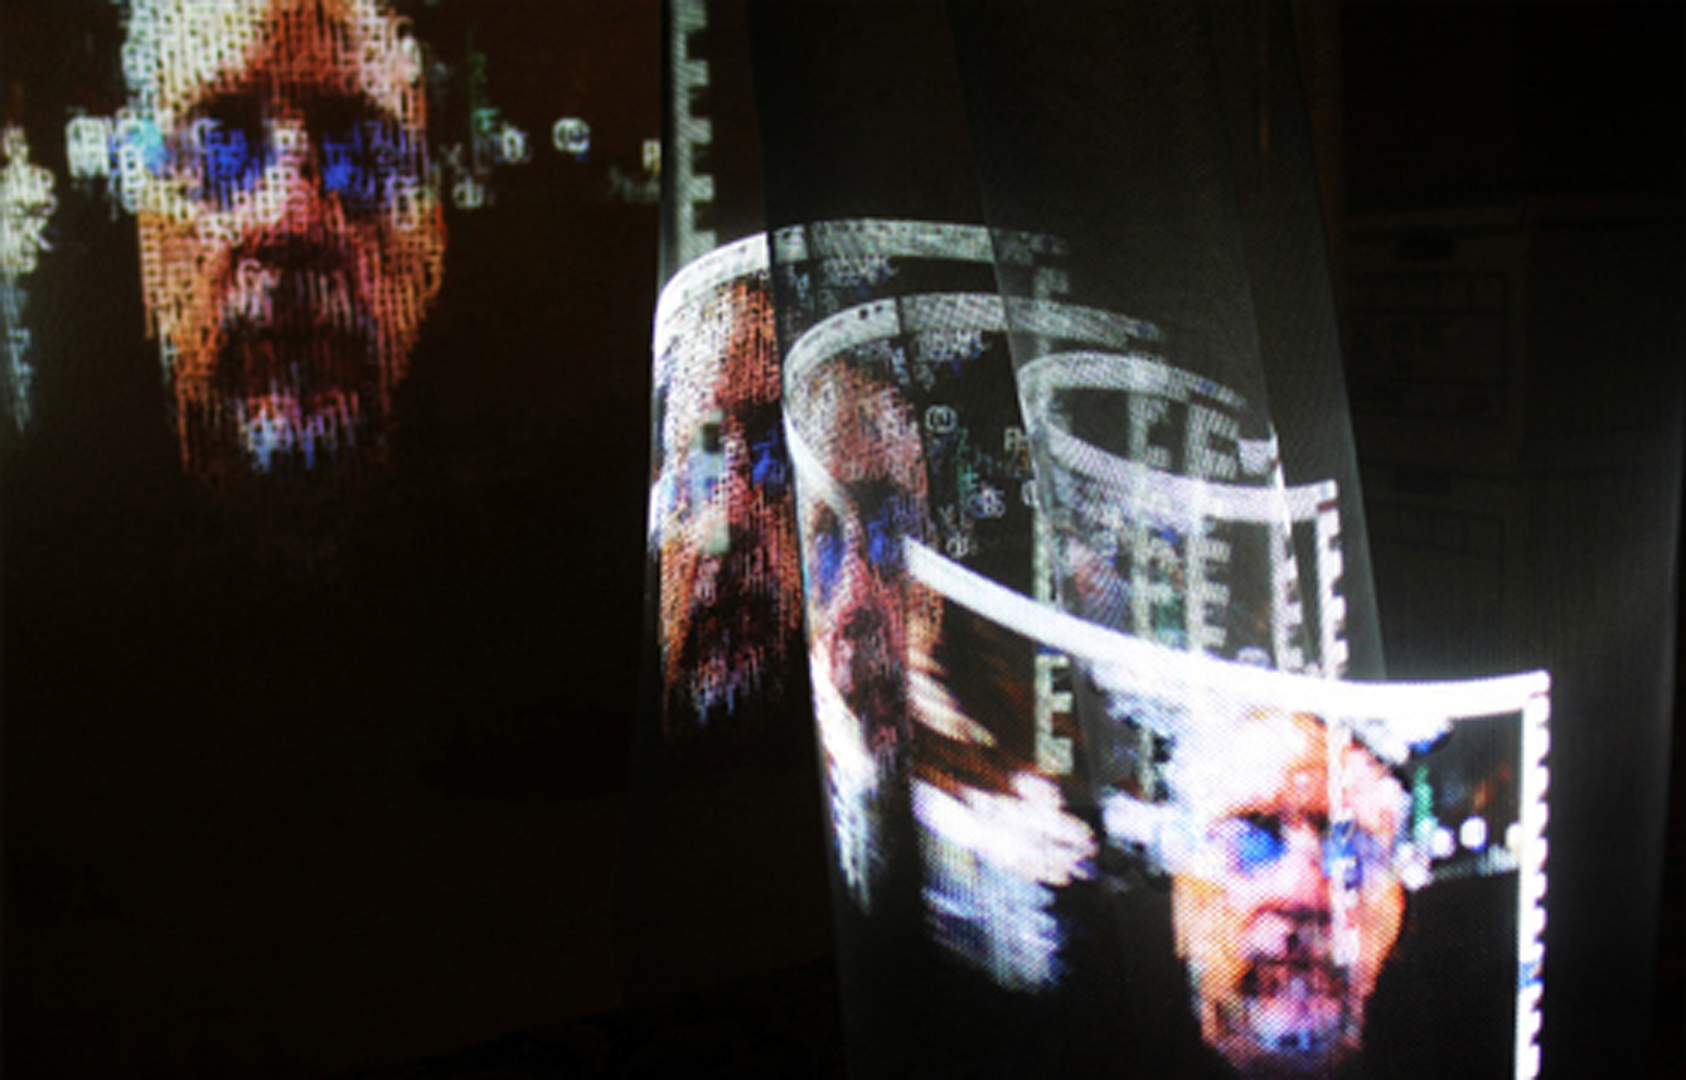 ©2011, Philip Sanders, HT/TB:(ATCWED): Home Theater/Tower of Babel: (After Tatlin Crick and Watson Étant Donnés)